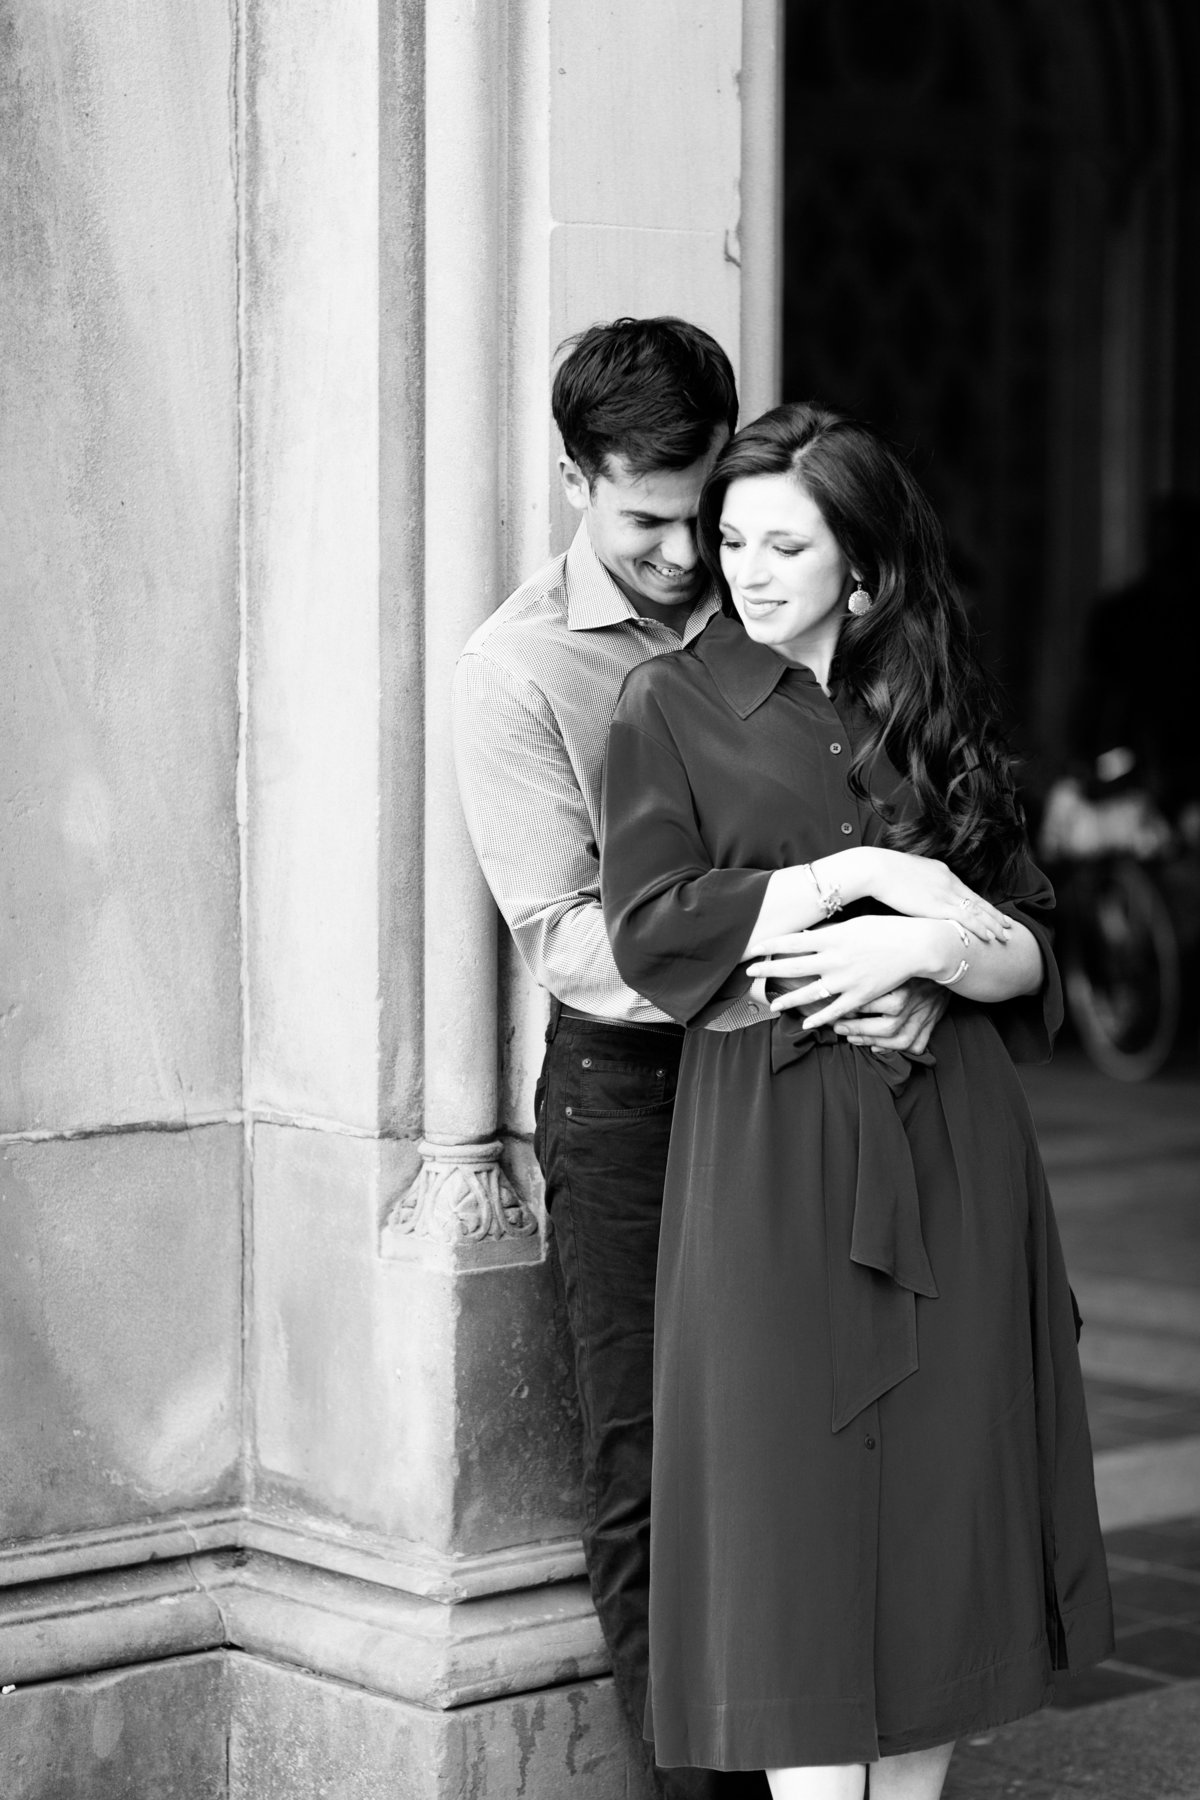 Lauren-Kearns-Central-Park-Engagement.jpg9